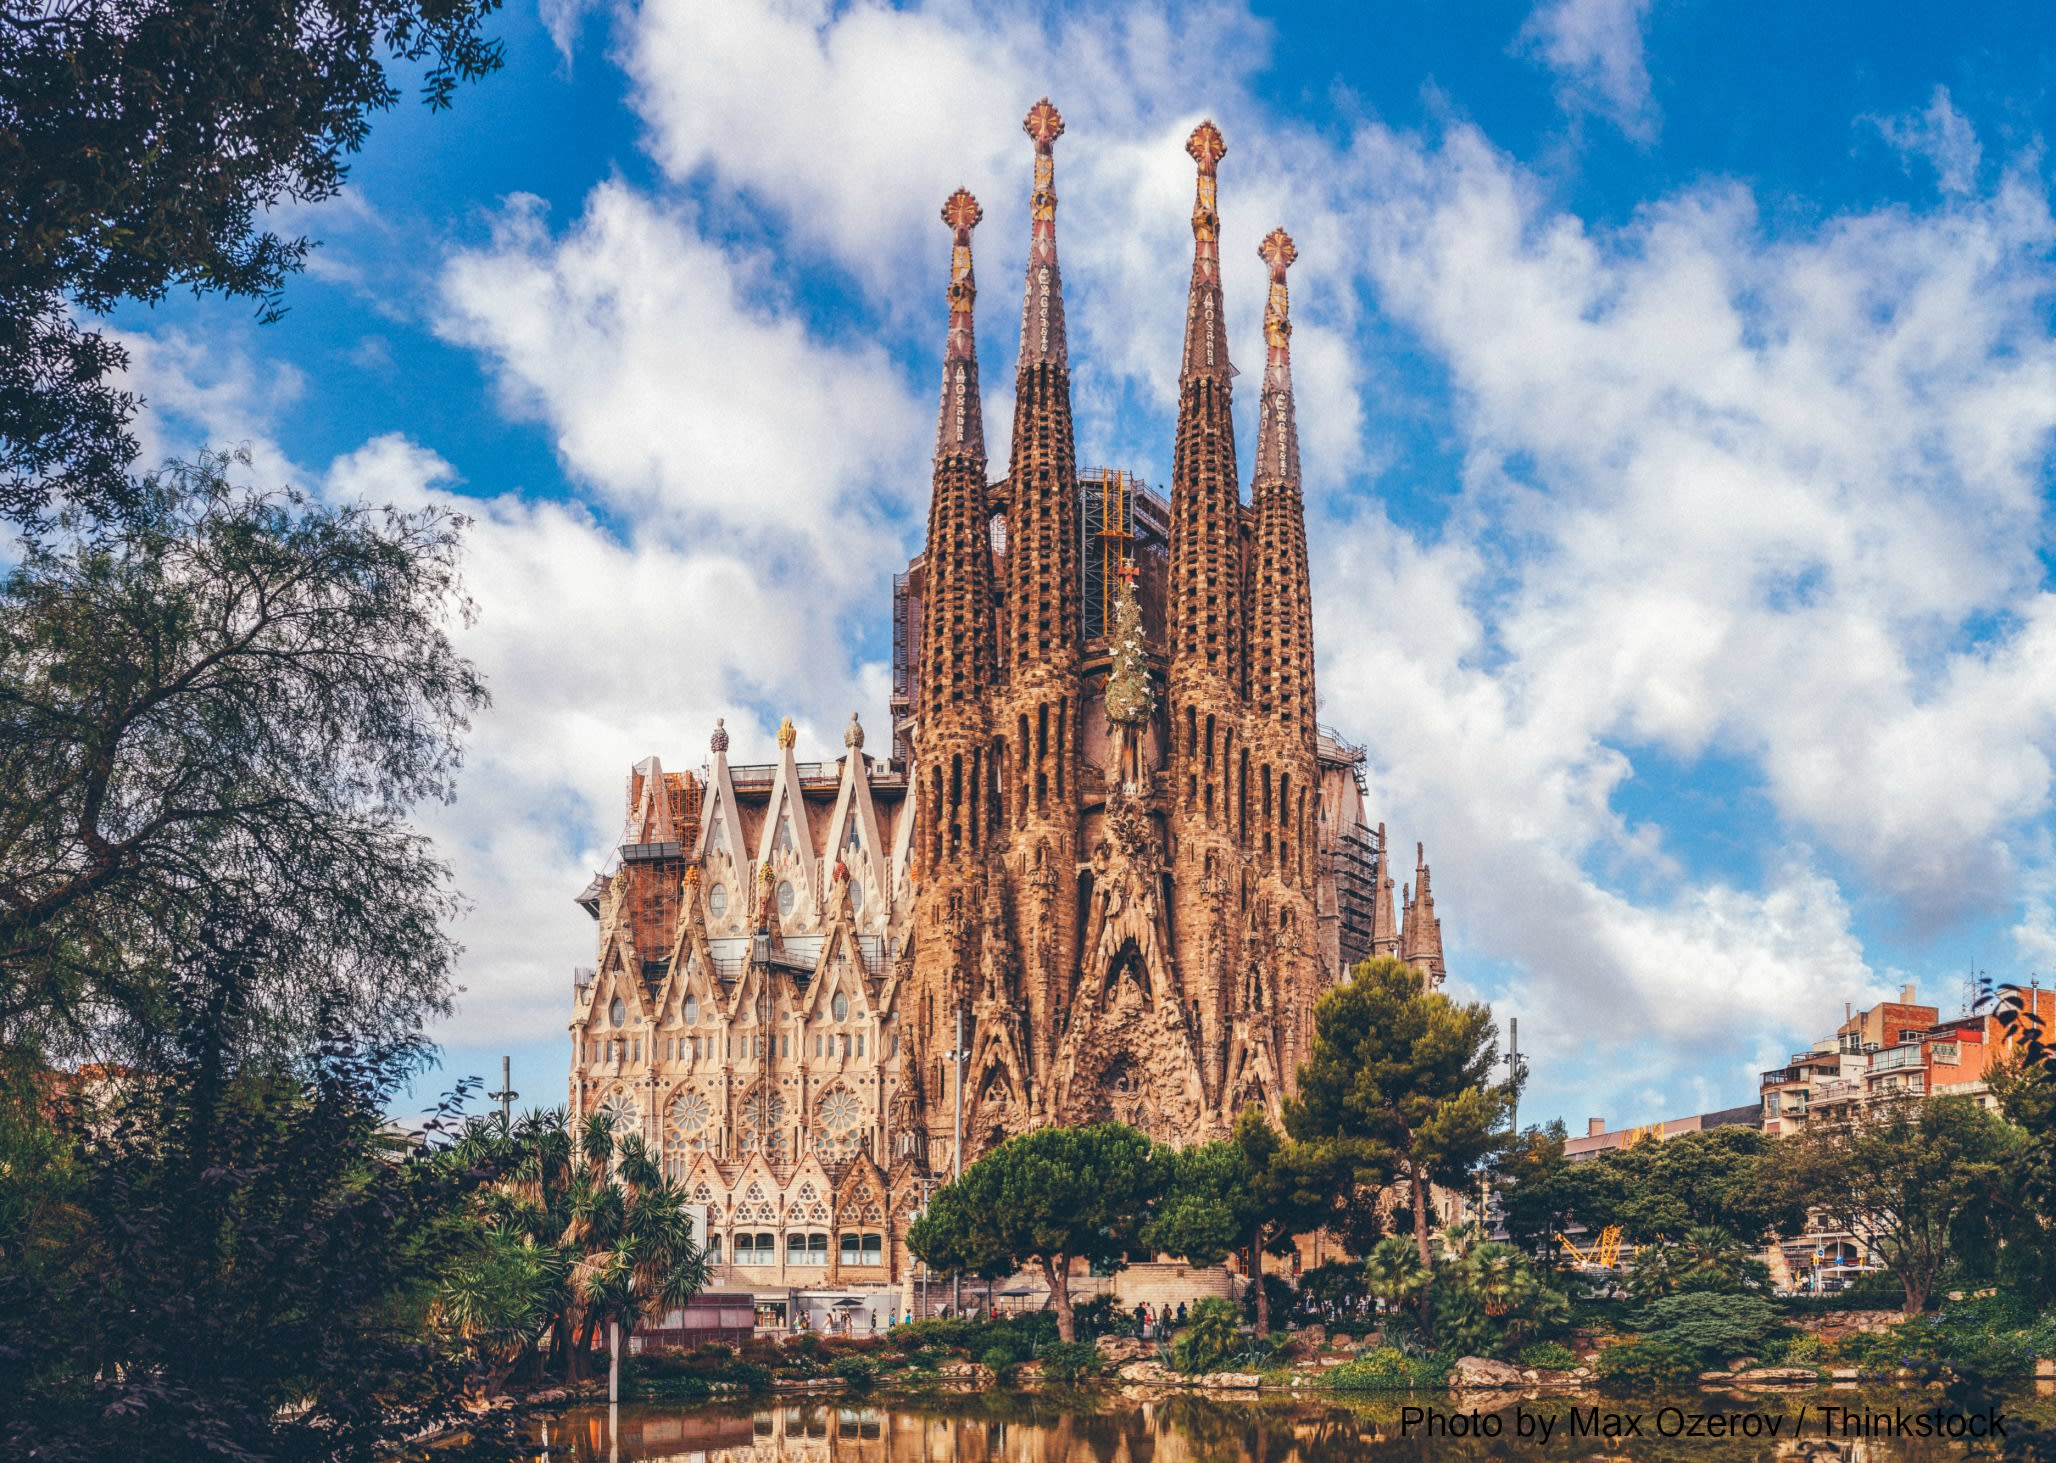 Visit the Sagrada de Familia, a popular Barcelona attraction